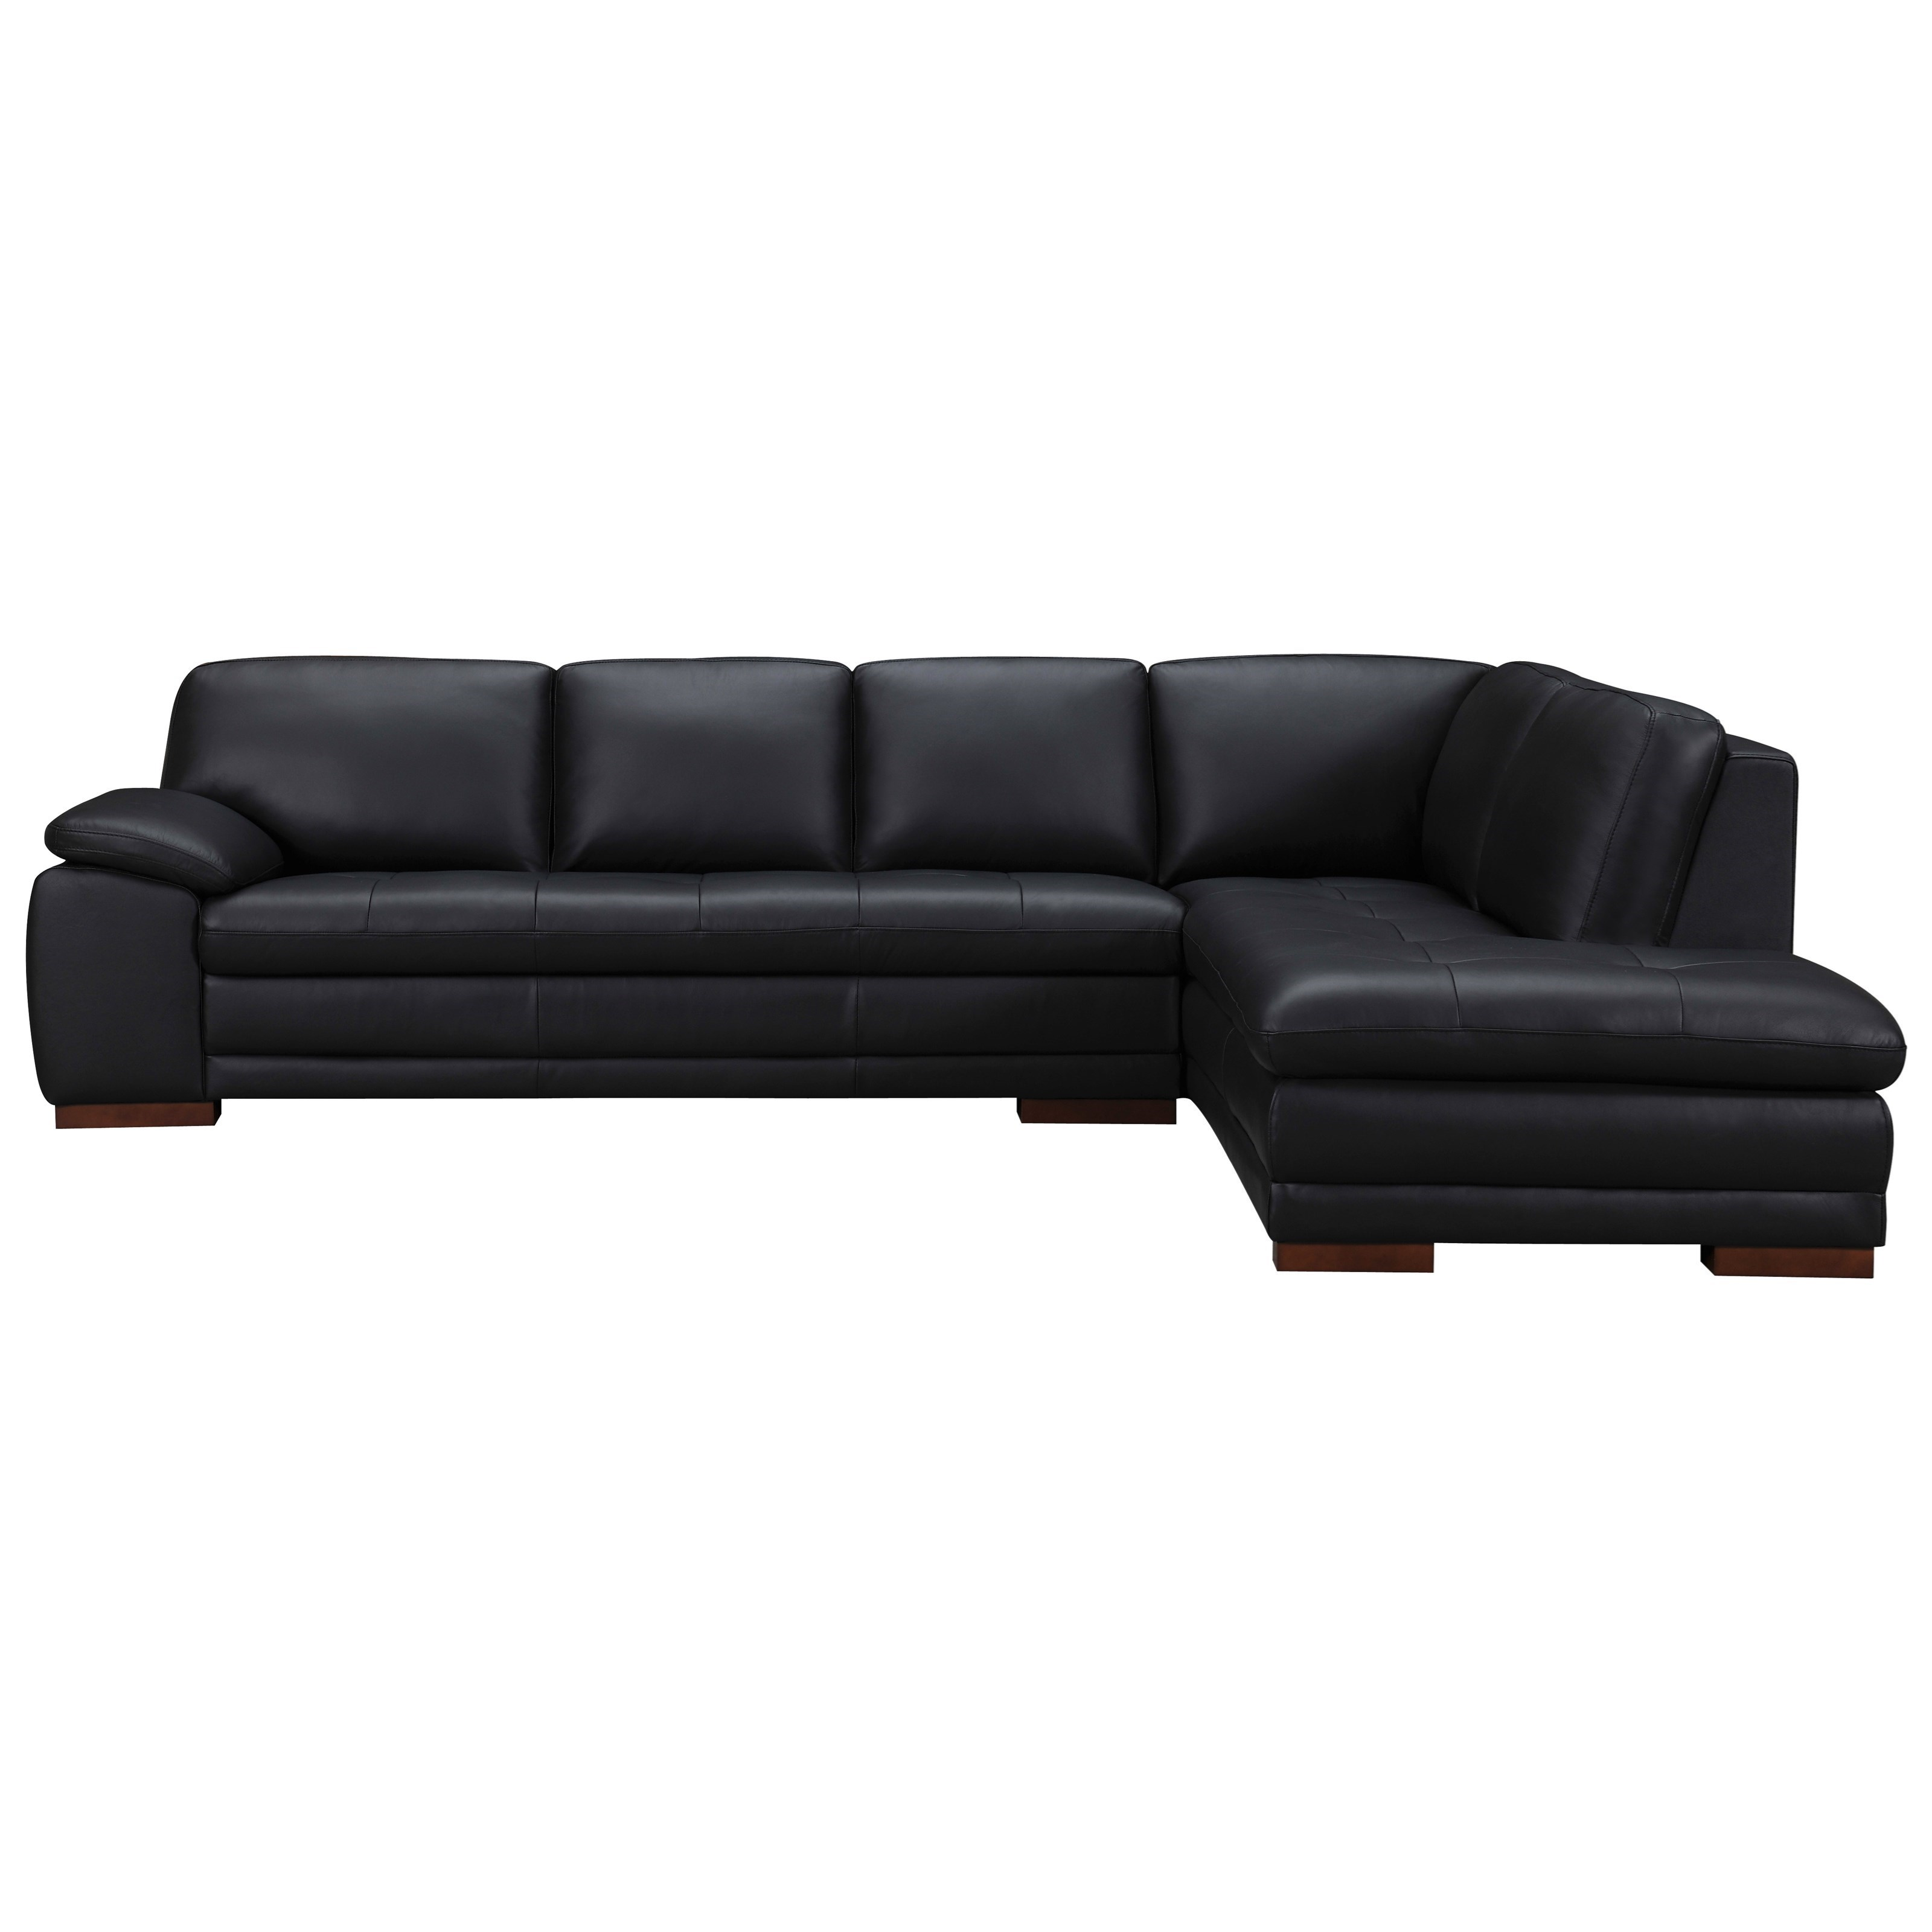 violino leather sofa stockists ekeskog dimensions 5038 casual two piece sectional bennett 39s